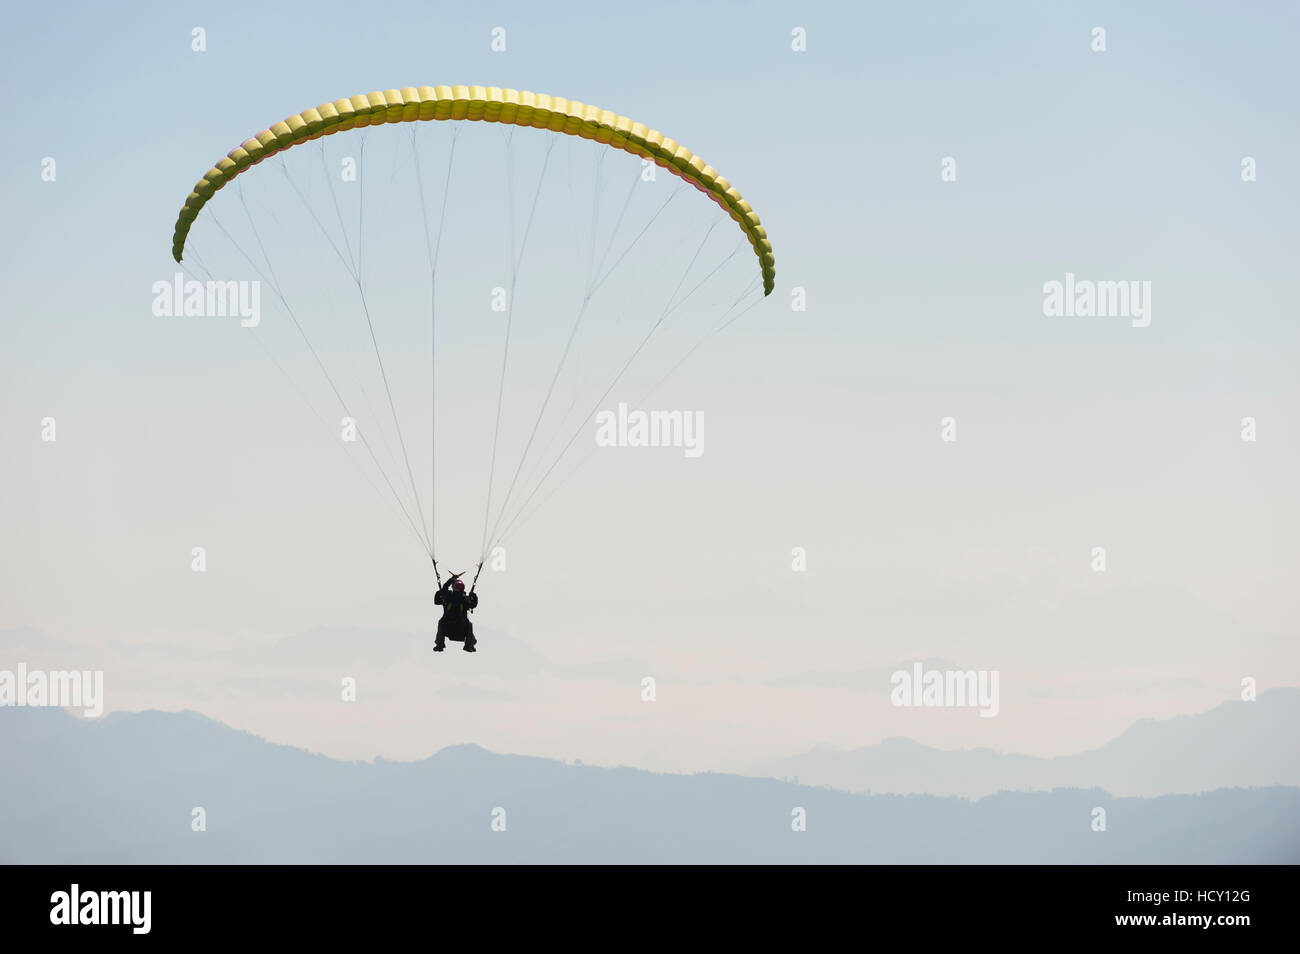 Paraglider flies above Pokhara, Nepal - Stock Image